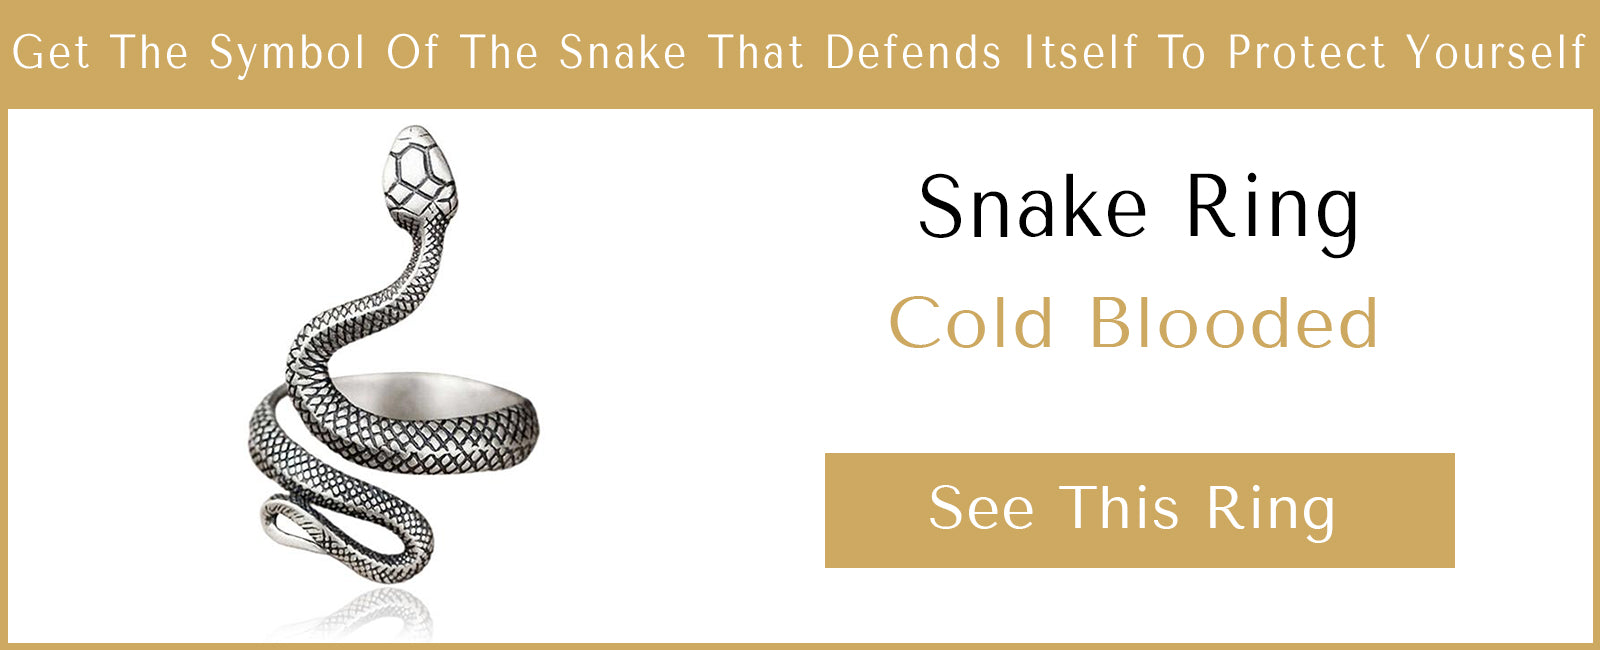 Coiled Serpent Ring Presentation